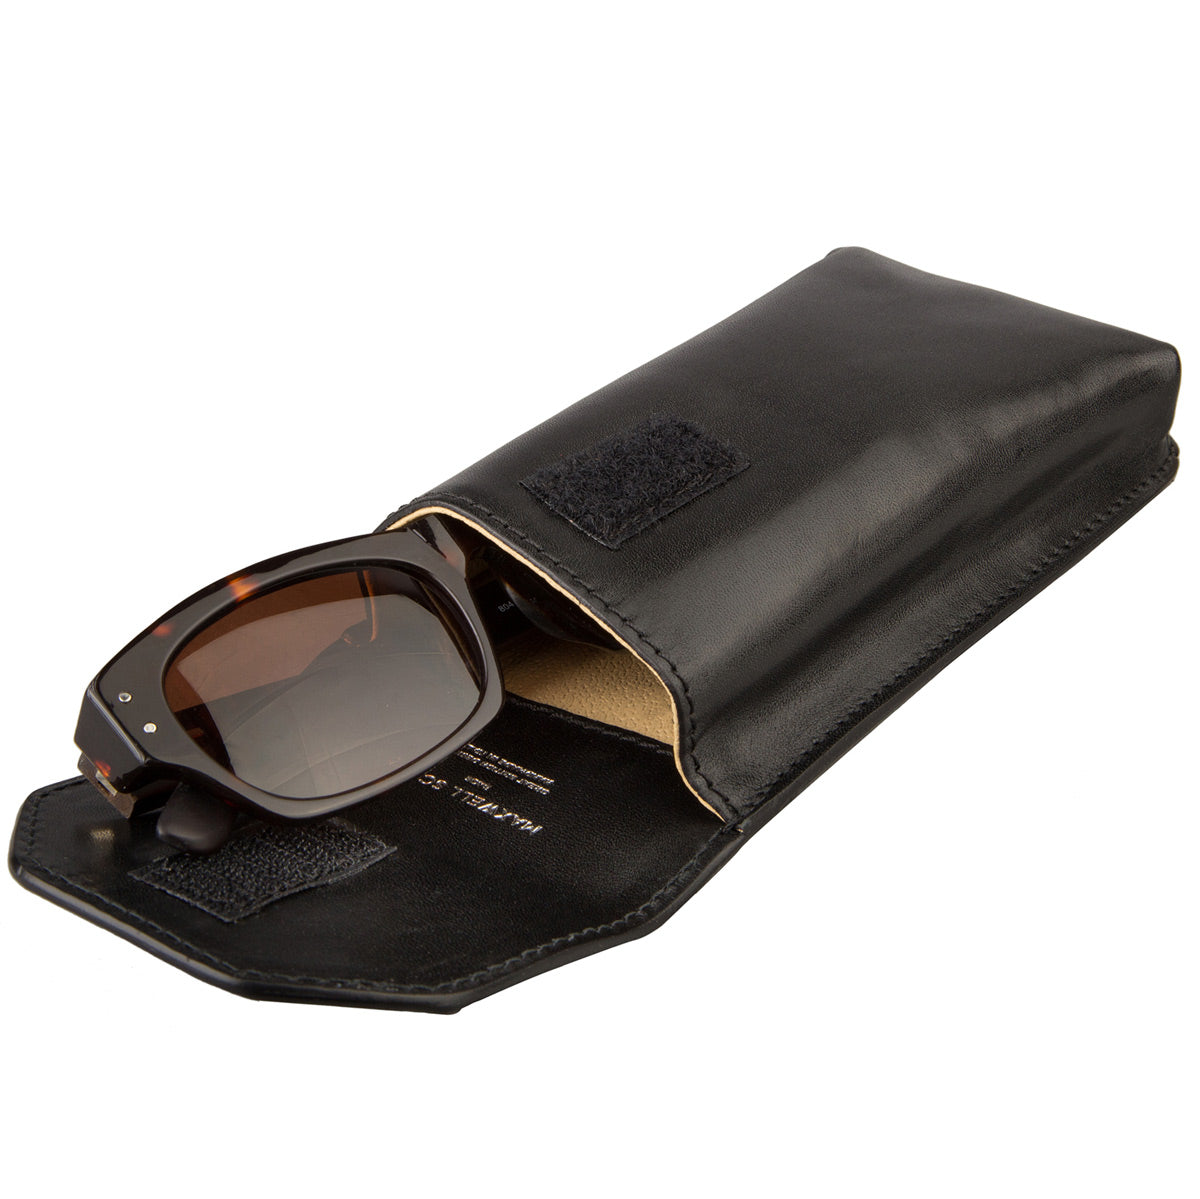 Image 4 of the 'Gabbro' Black Veg-Tanned Leather Glasses Case